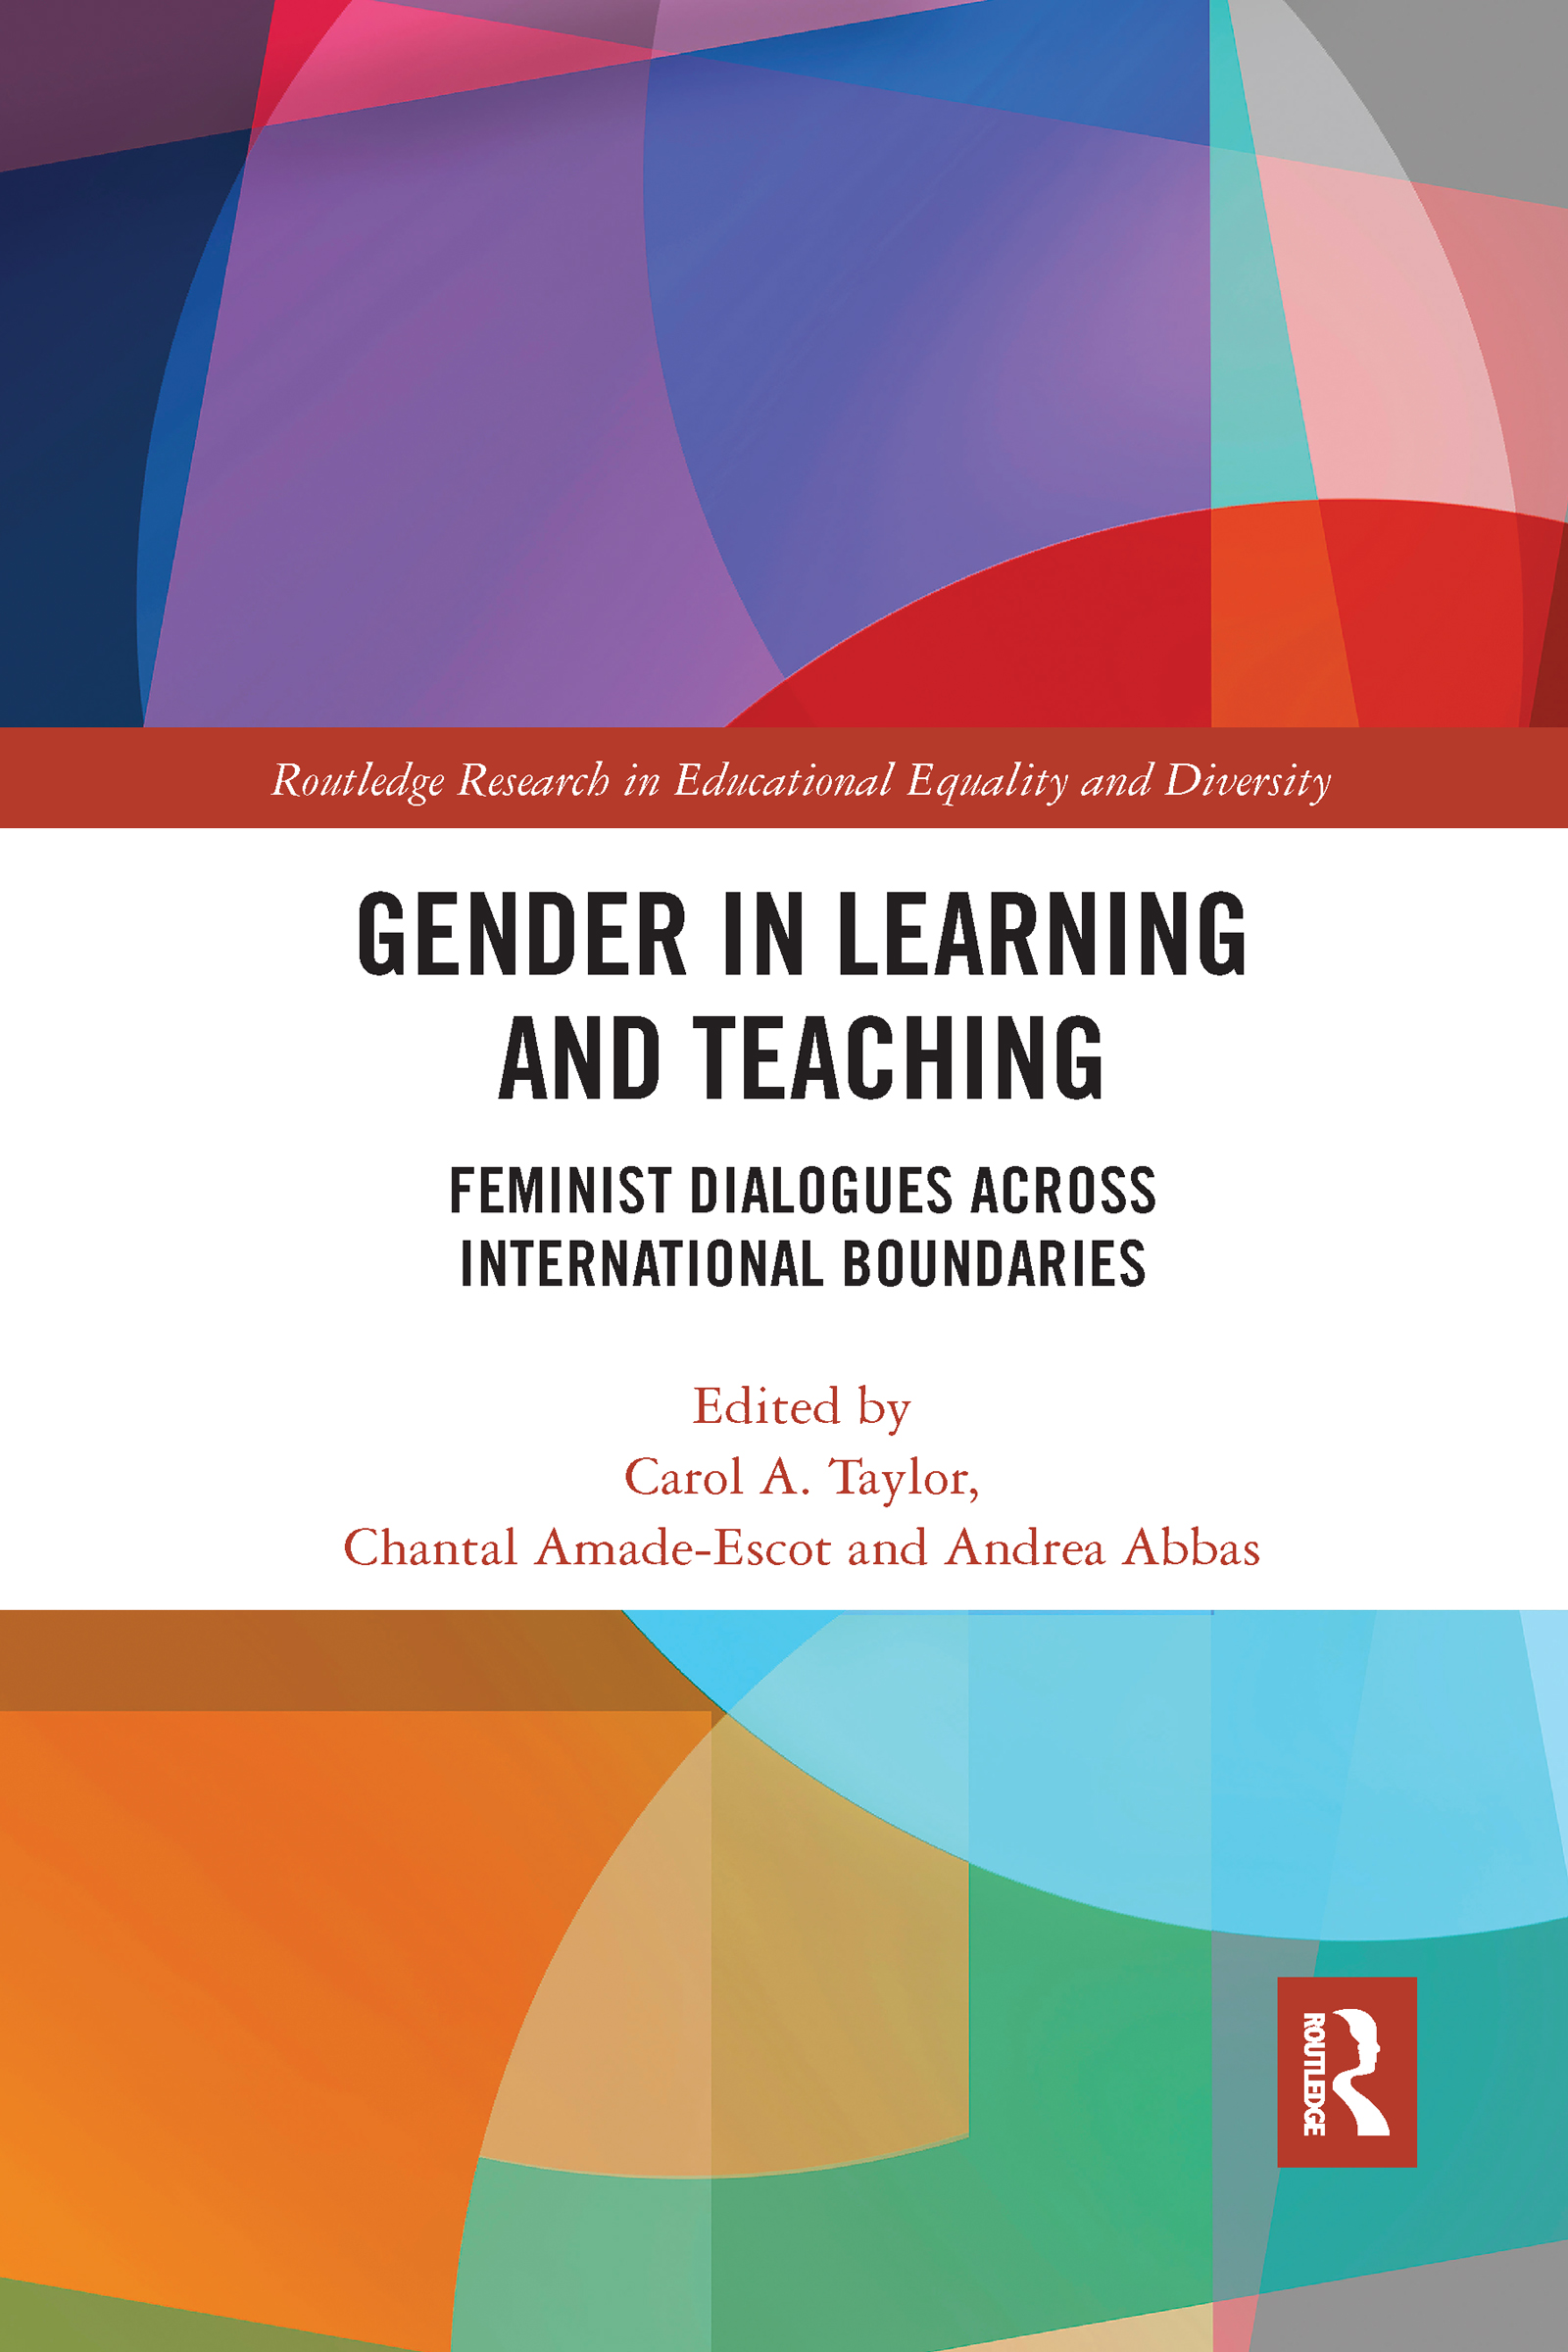 Gender in Learning and Teaching